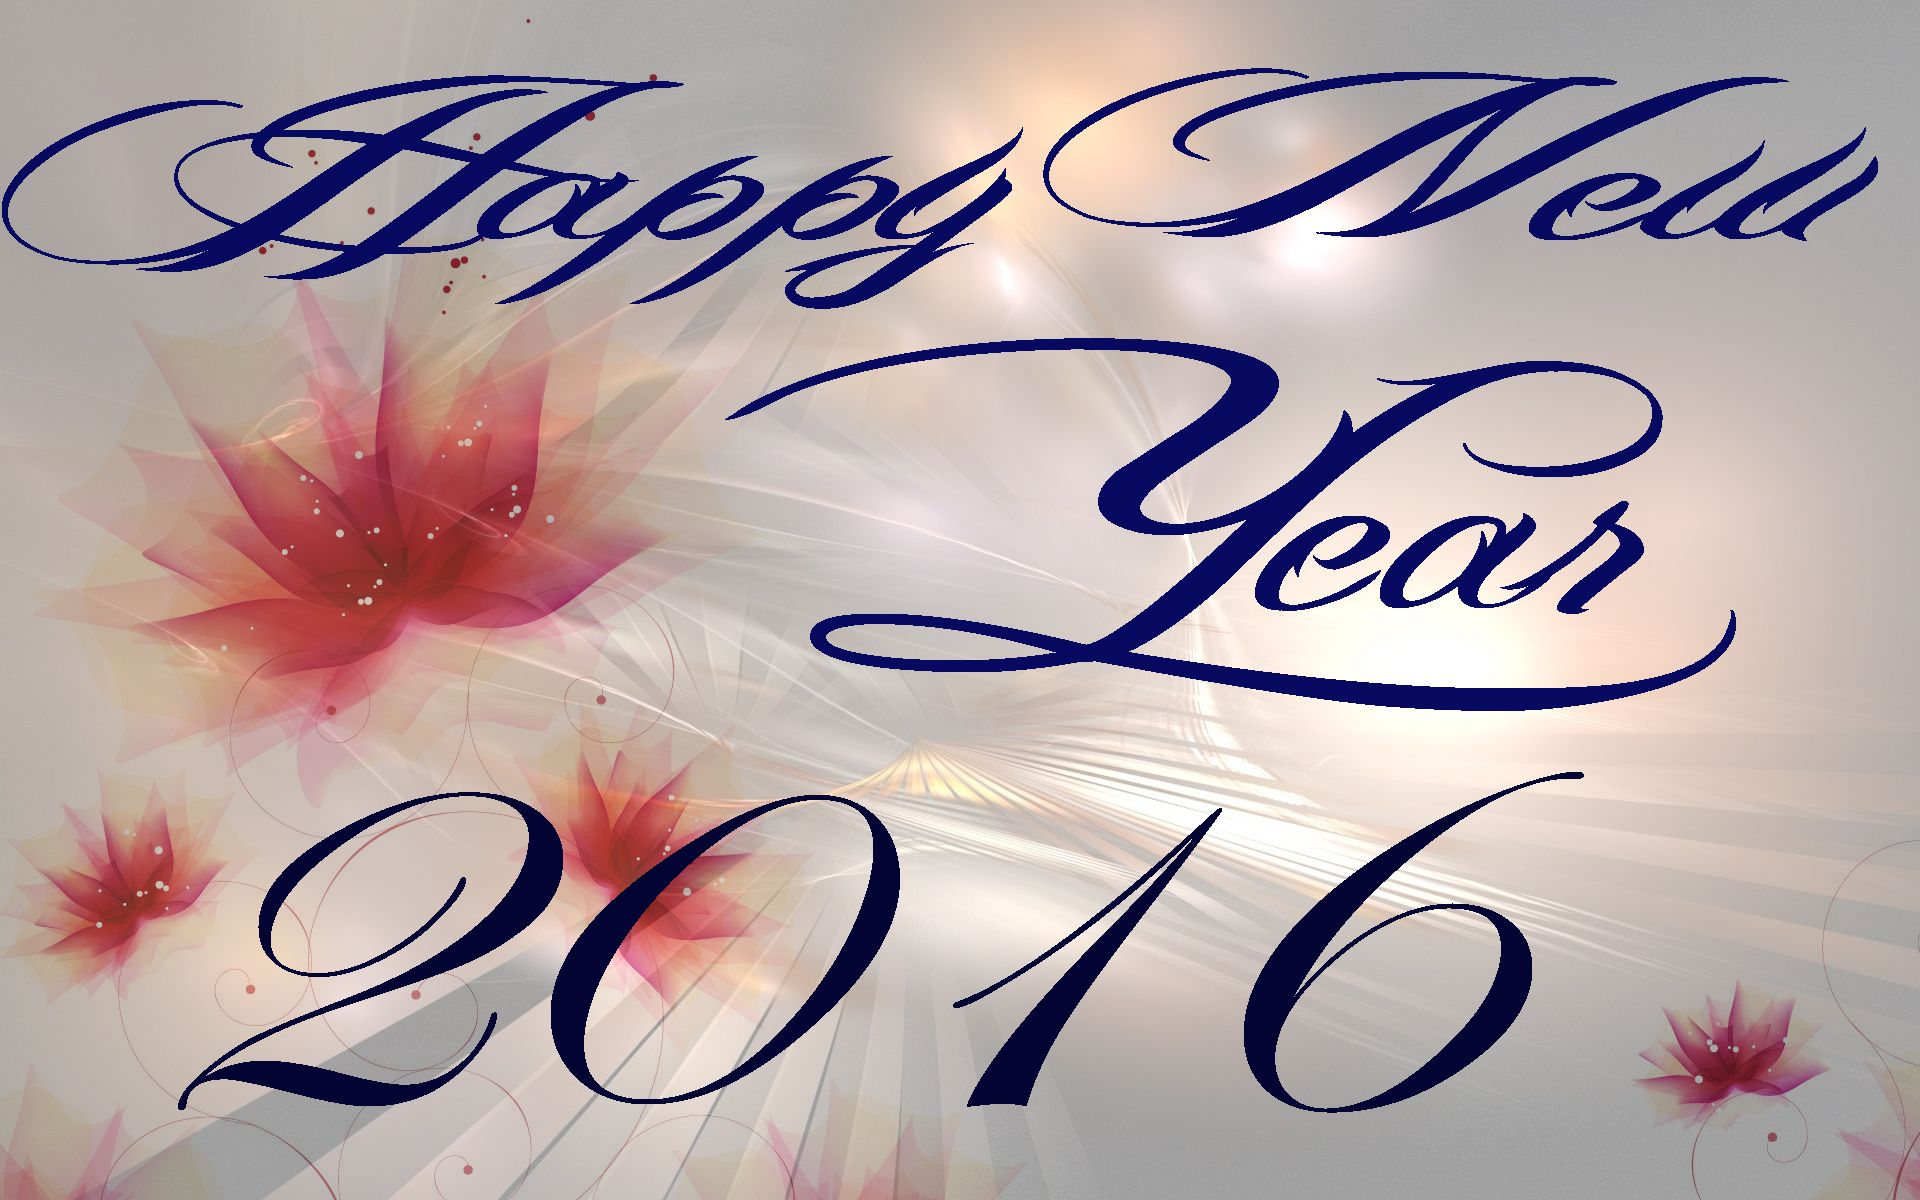 Happy new year 2016 hd wallpapers collection happy valentines happy new year 2016 hd wallpapers collection happy valentines 2016 mmxvi is the current year and is a leap year pinterest year 2016 spiritdancerdesigns Choice Image